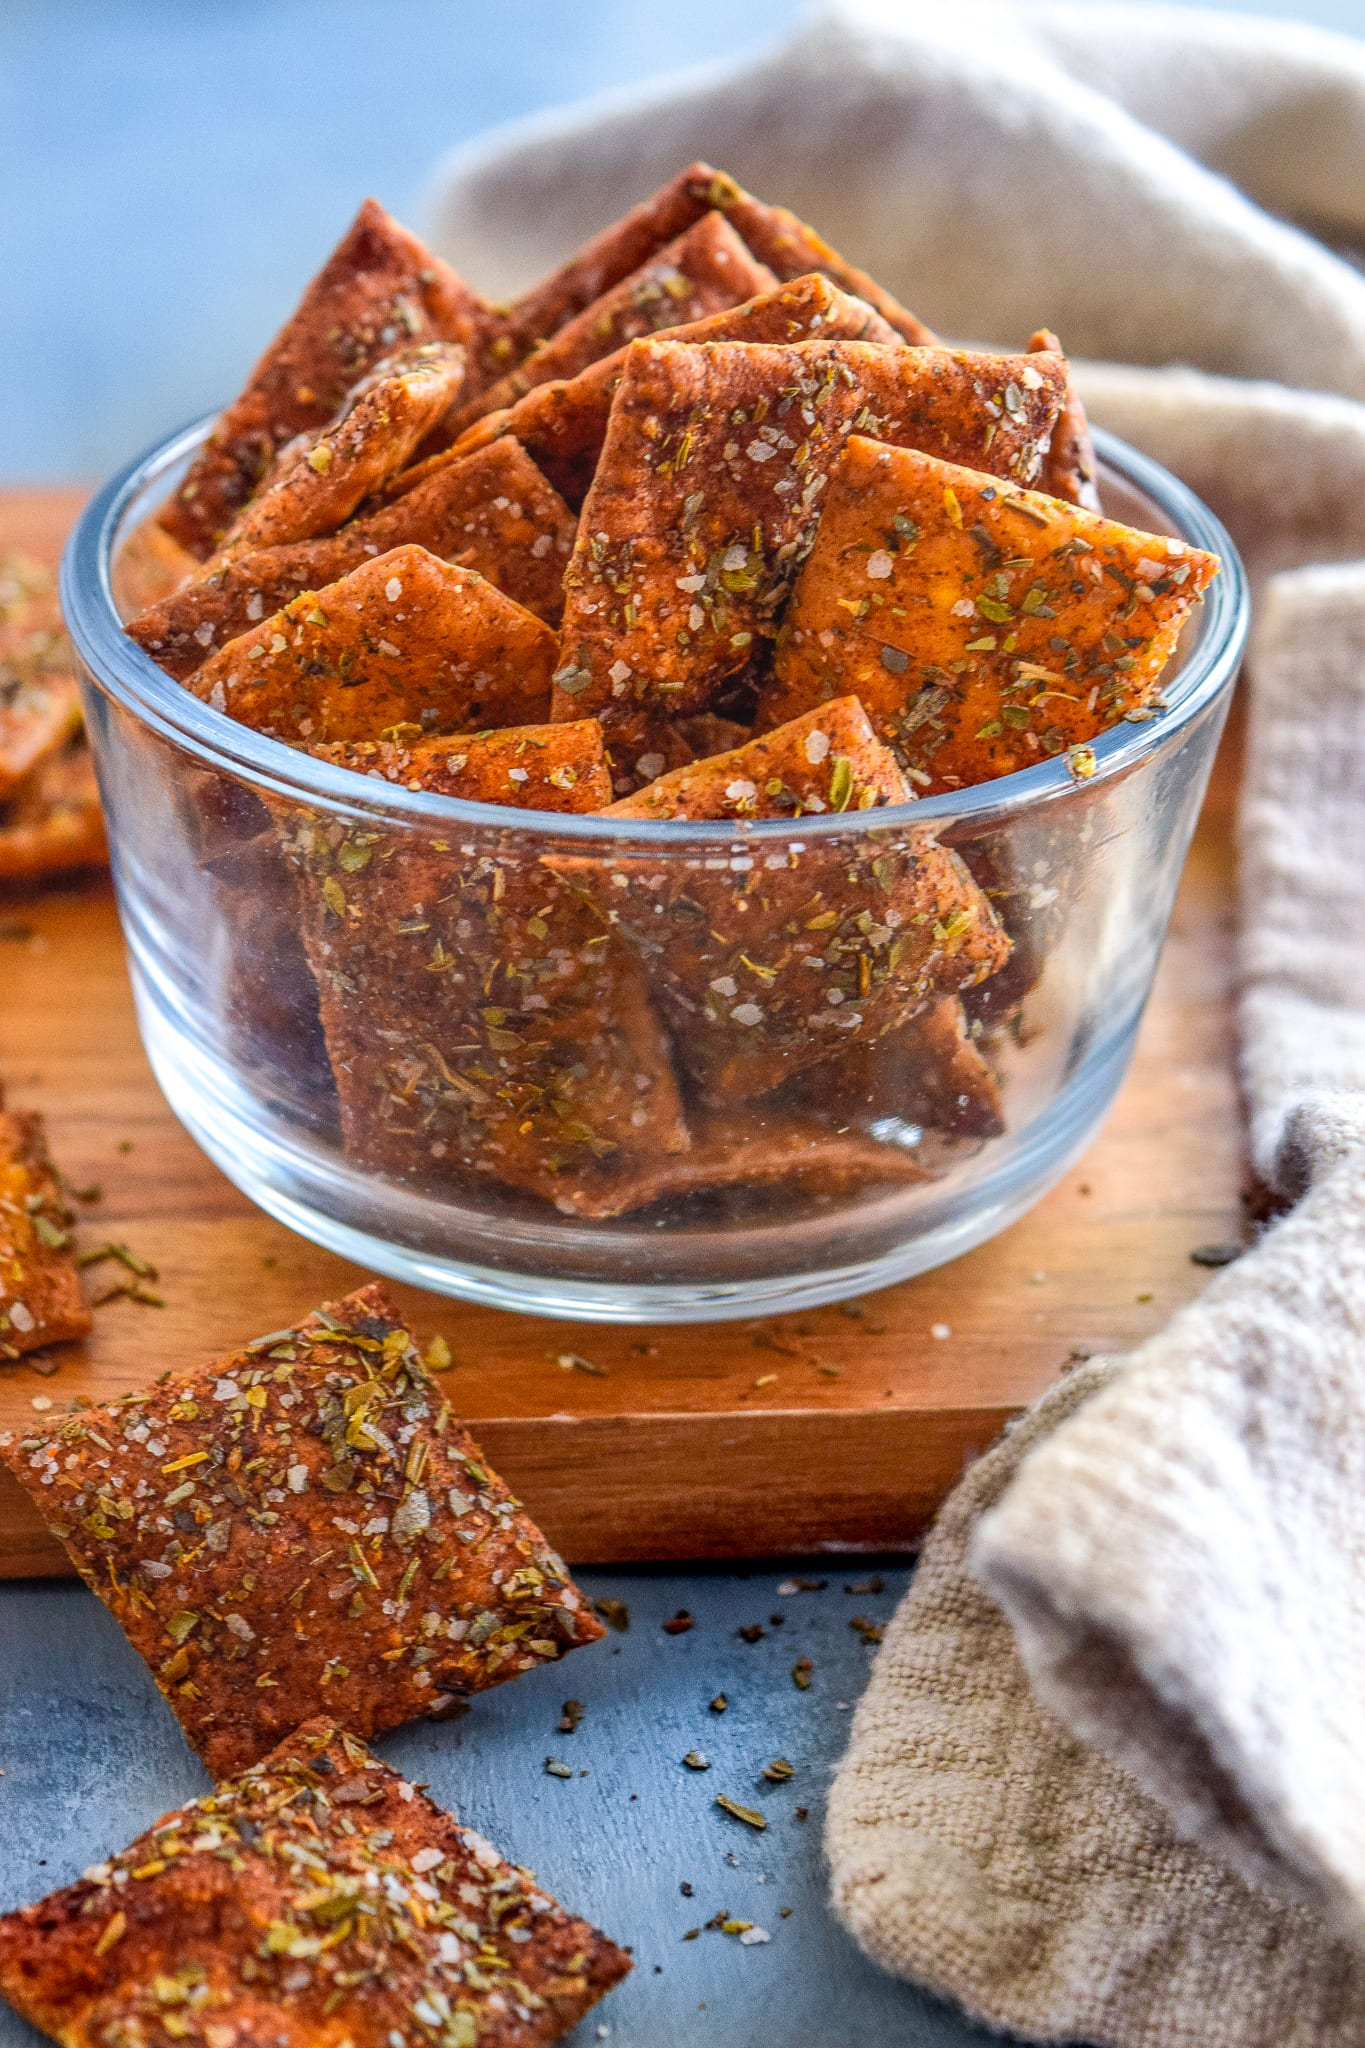 Turkish-Spiced Pie Crust Crackers (4 servings)